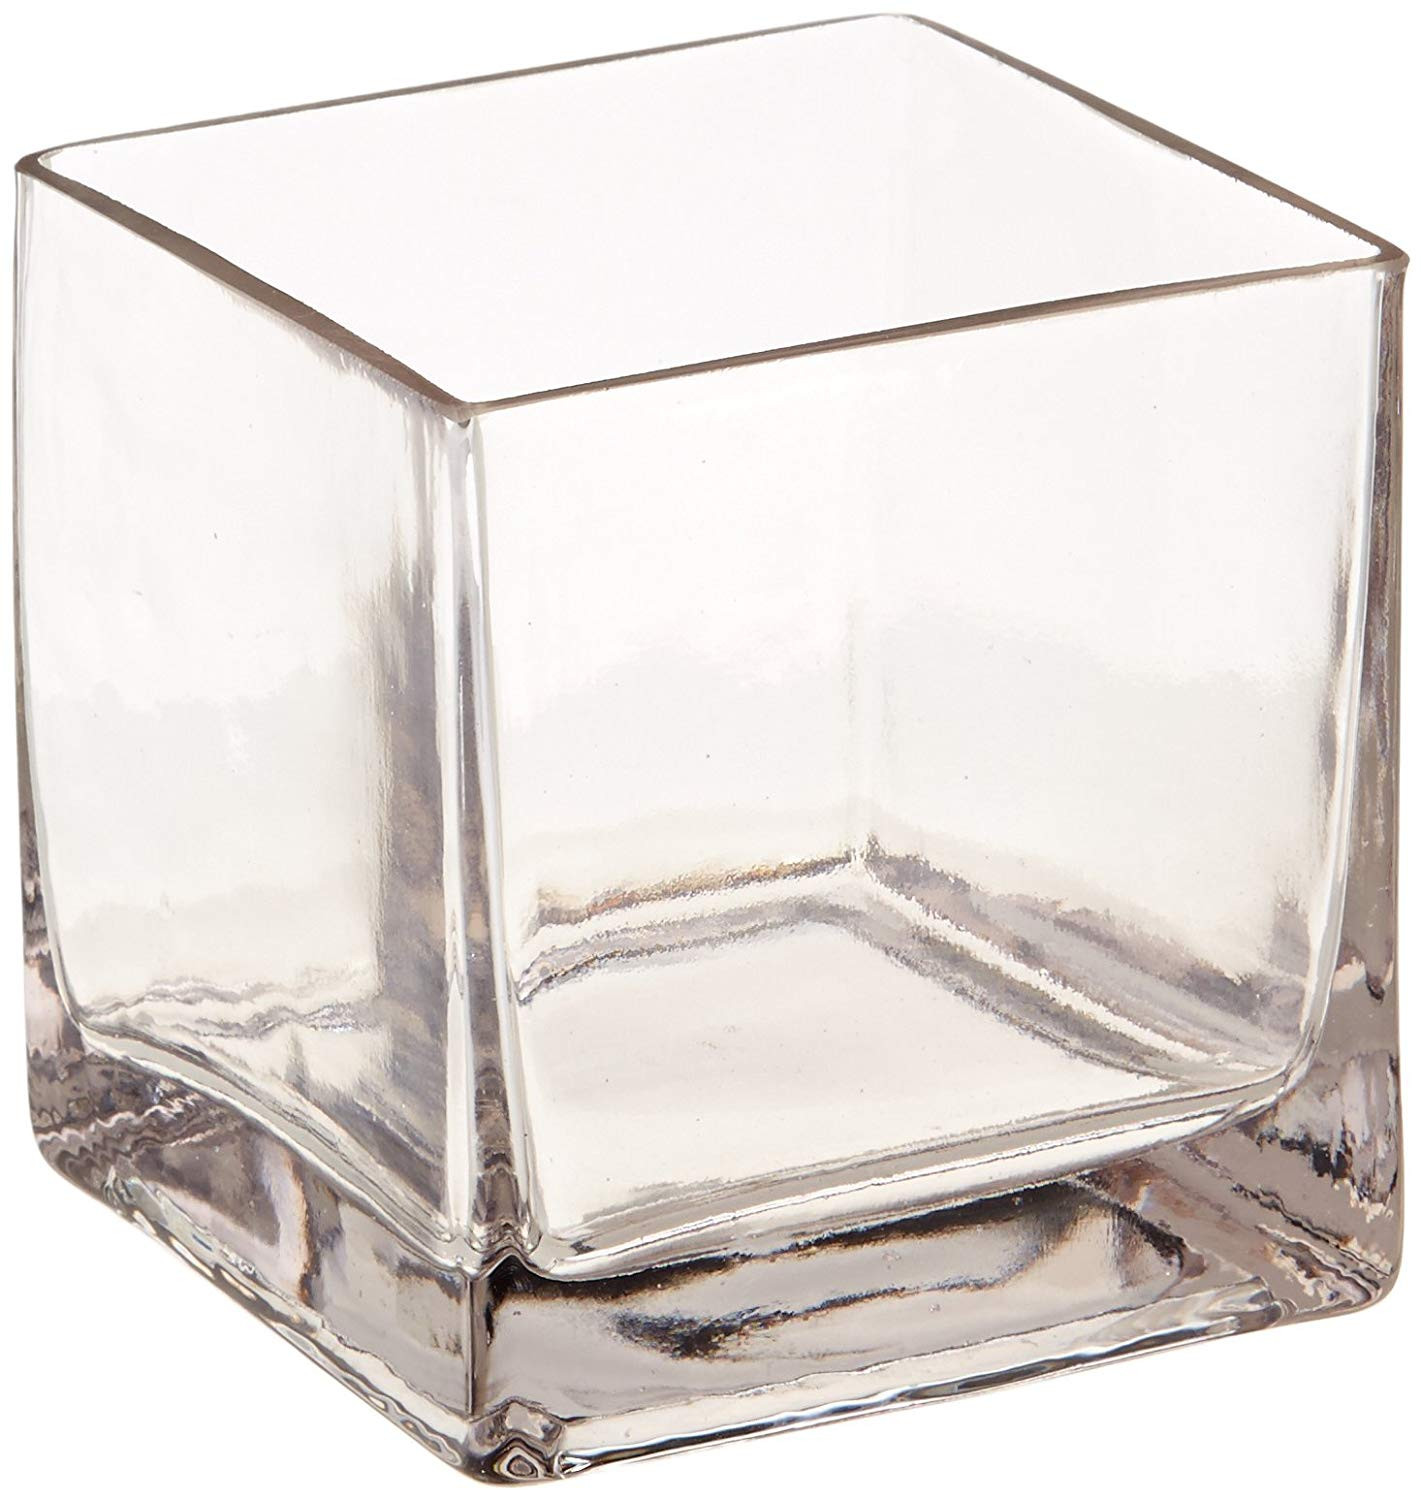 square black glass vase of amazon com 12piece 4 square crystal clear glass vase home kitchen inside 71 jezfmvnl sl1500